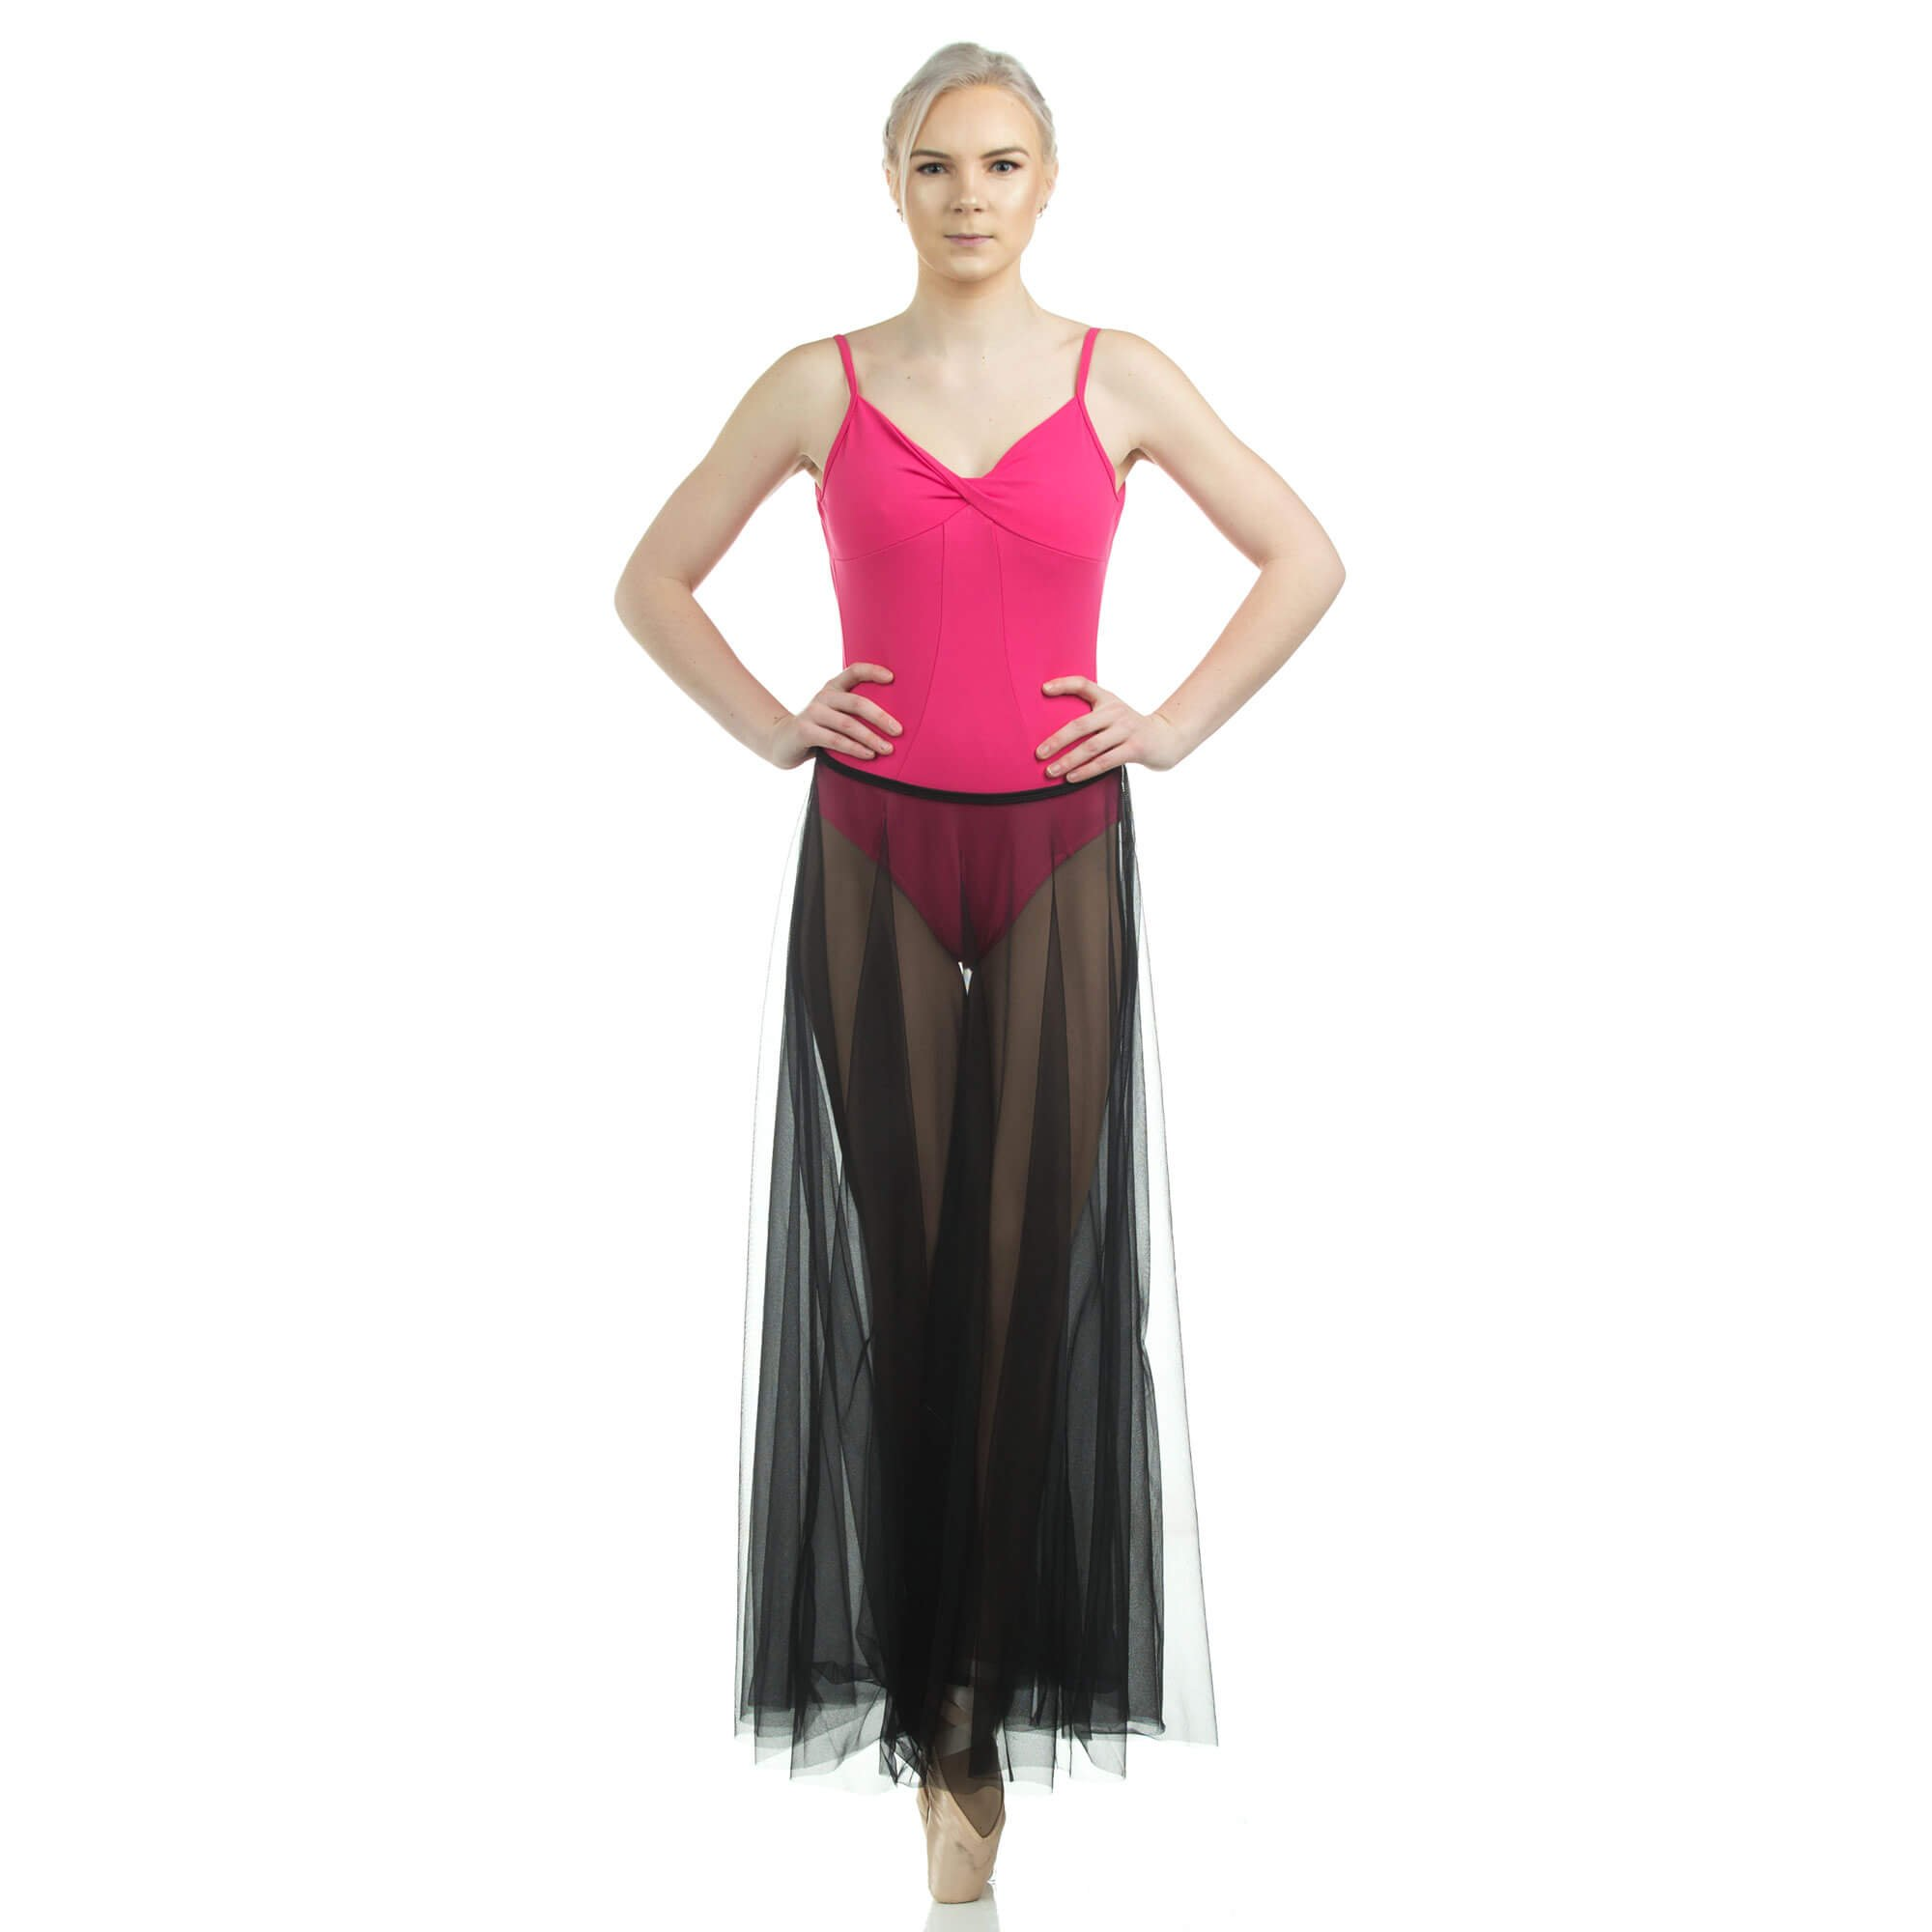 Danzcue Long Full Chiffon Skirt - Click Image to Close